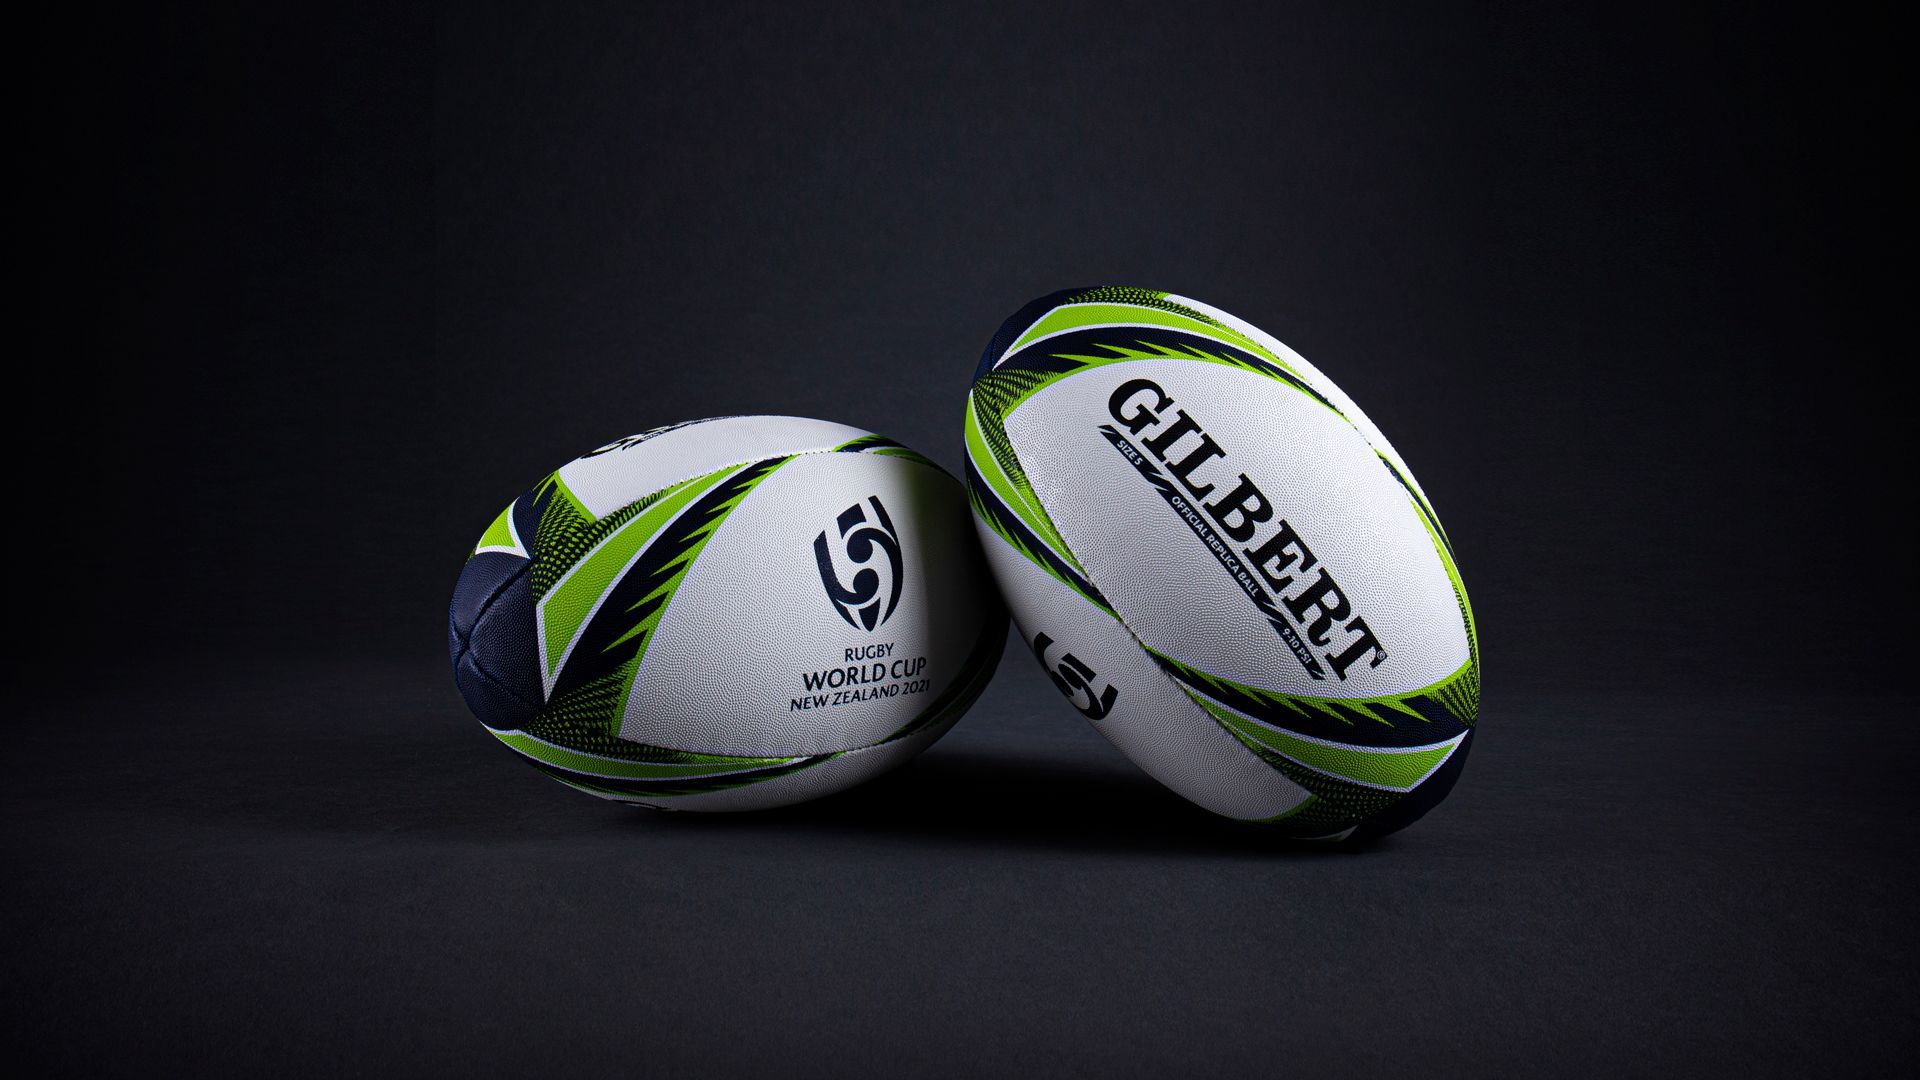 Rugby World Cup 2021 Match Ball